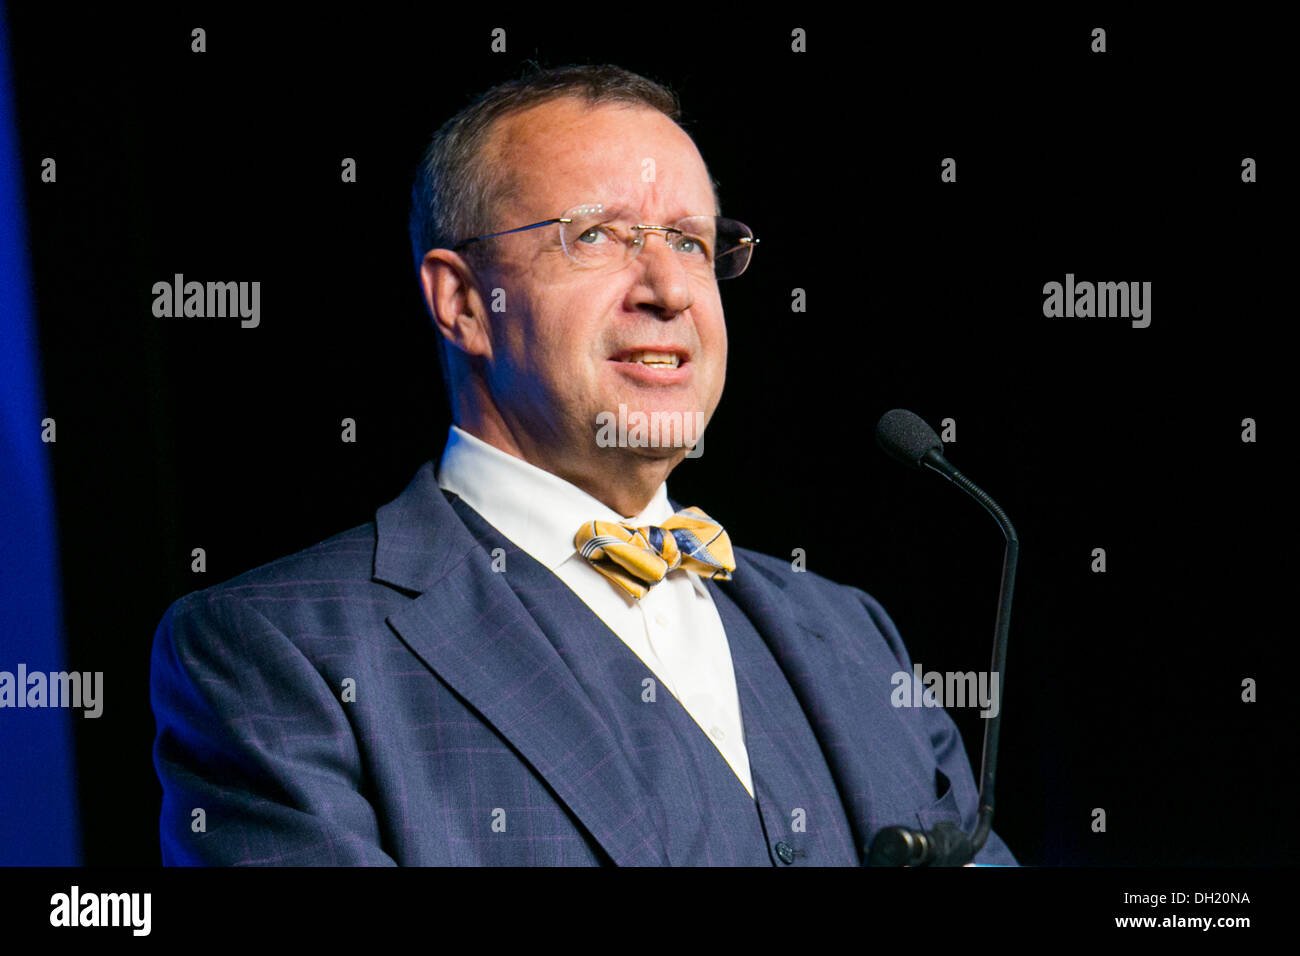 Toomas Hendrik Ilves, the President Of Estonia.  - Stock Image